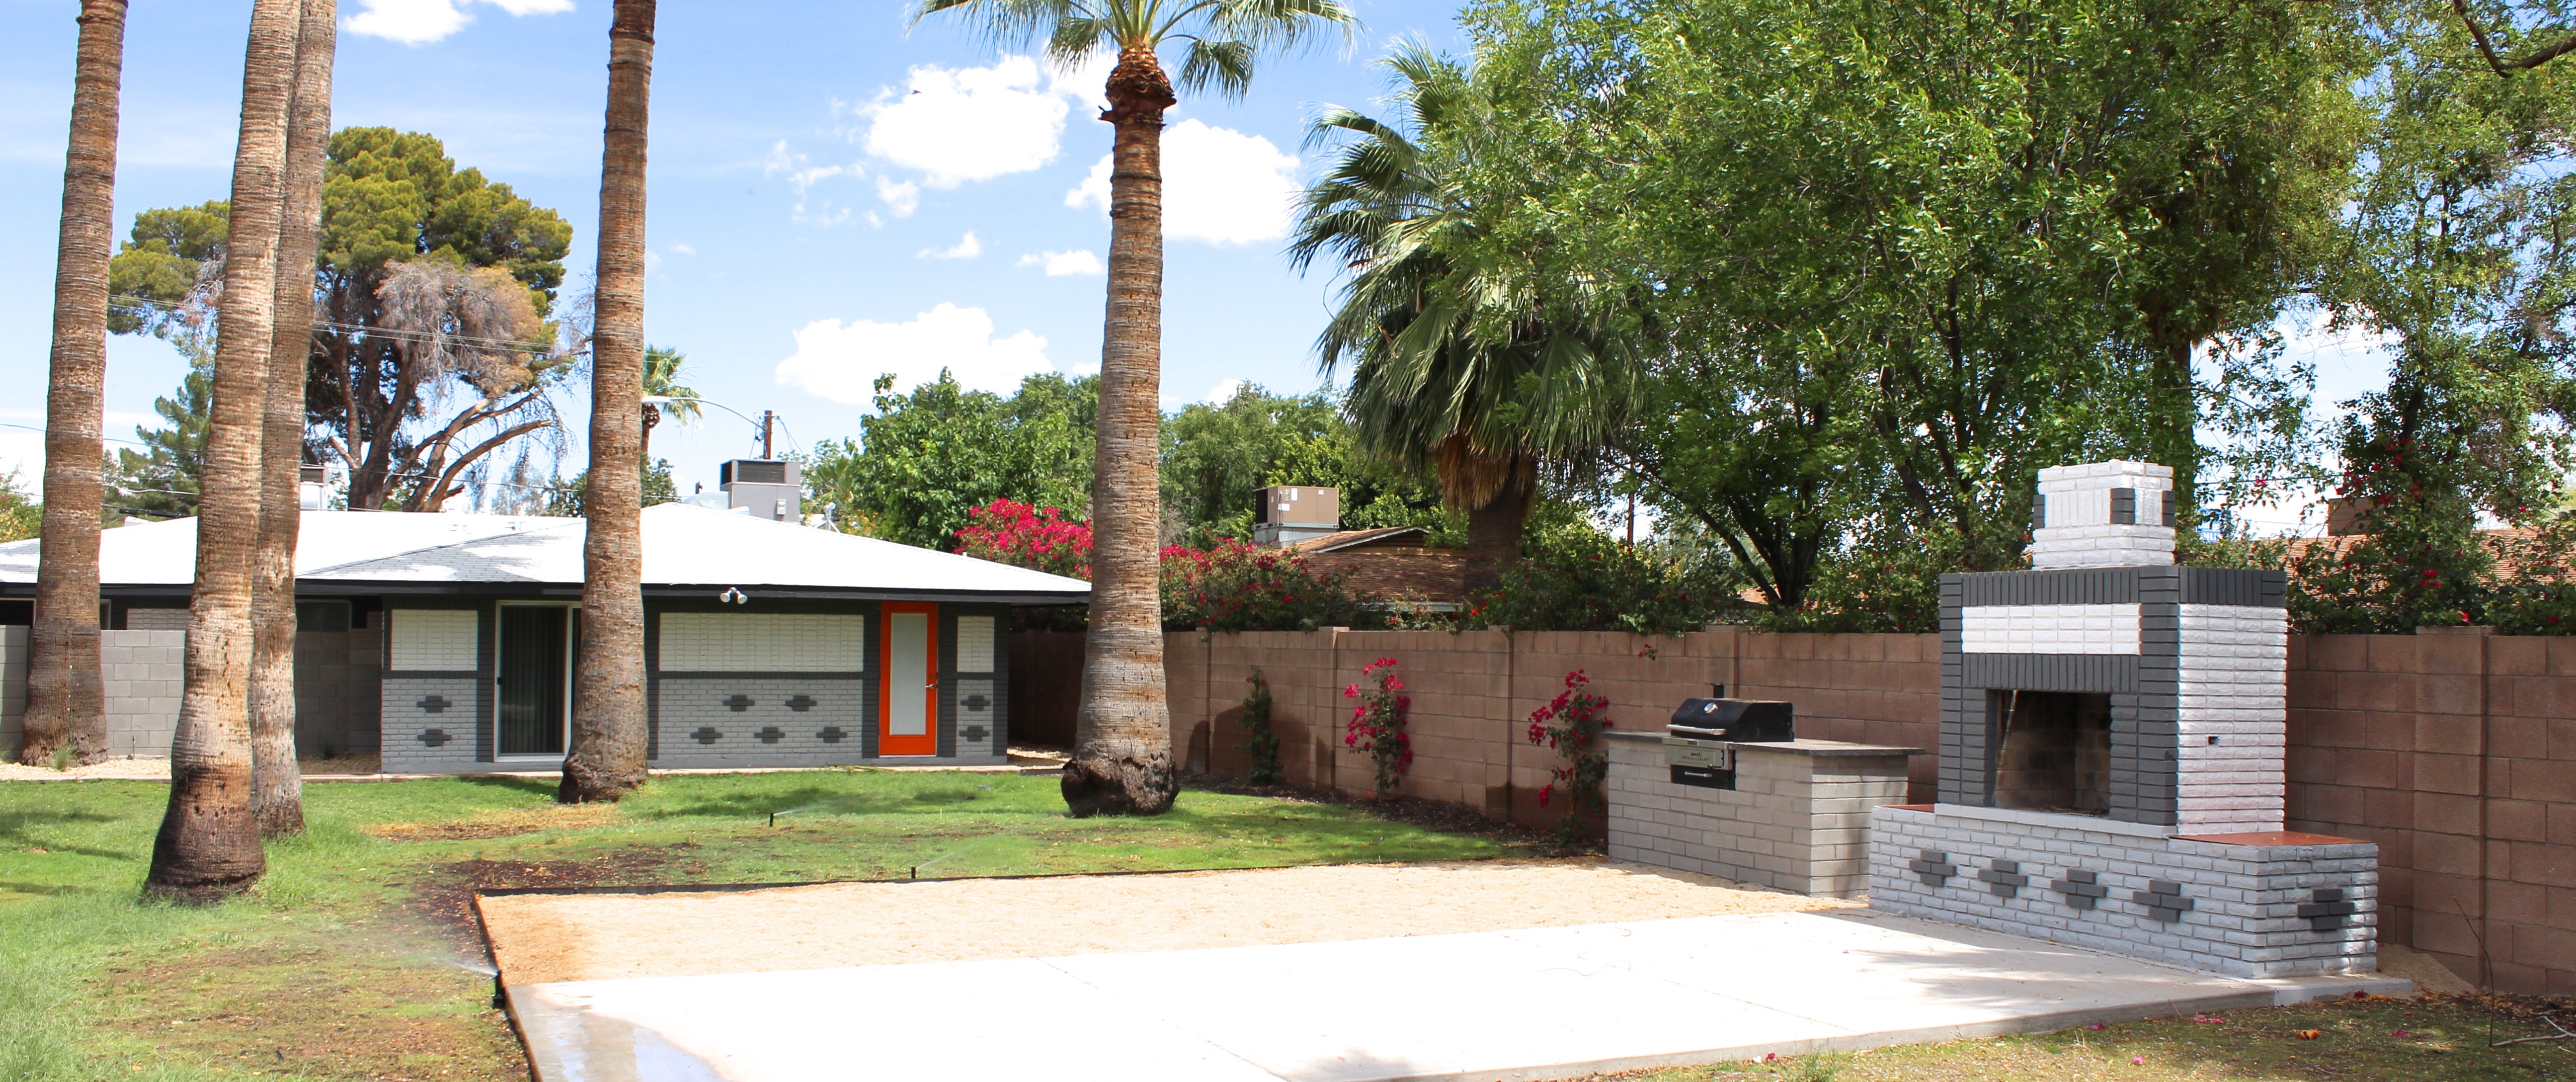 MODE @ 10th Street | 4140 N 10th St, Phoenix, AZ 85014 | Midtown Phoenix Apartments